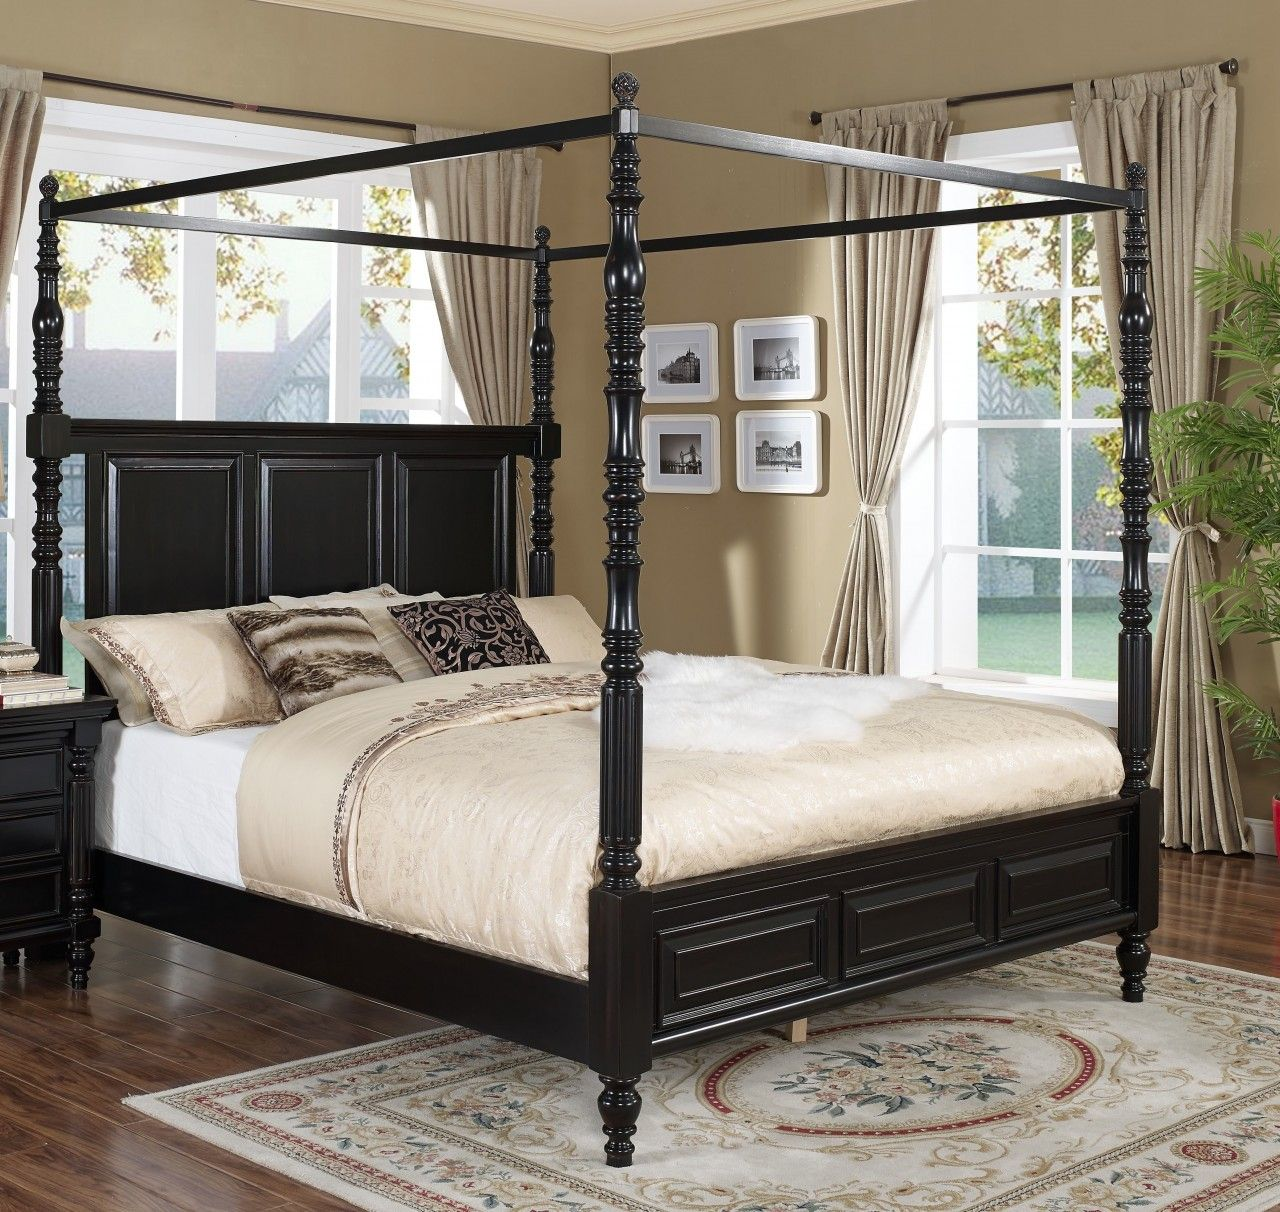 New Classic Martinique Queen Canopy Bed with Drapes in Rubbed Black 00-222-311Q & New Classic Martinique Queen Canopy Bed with Drapes in Rubbed ...